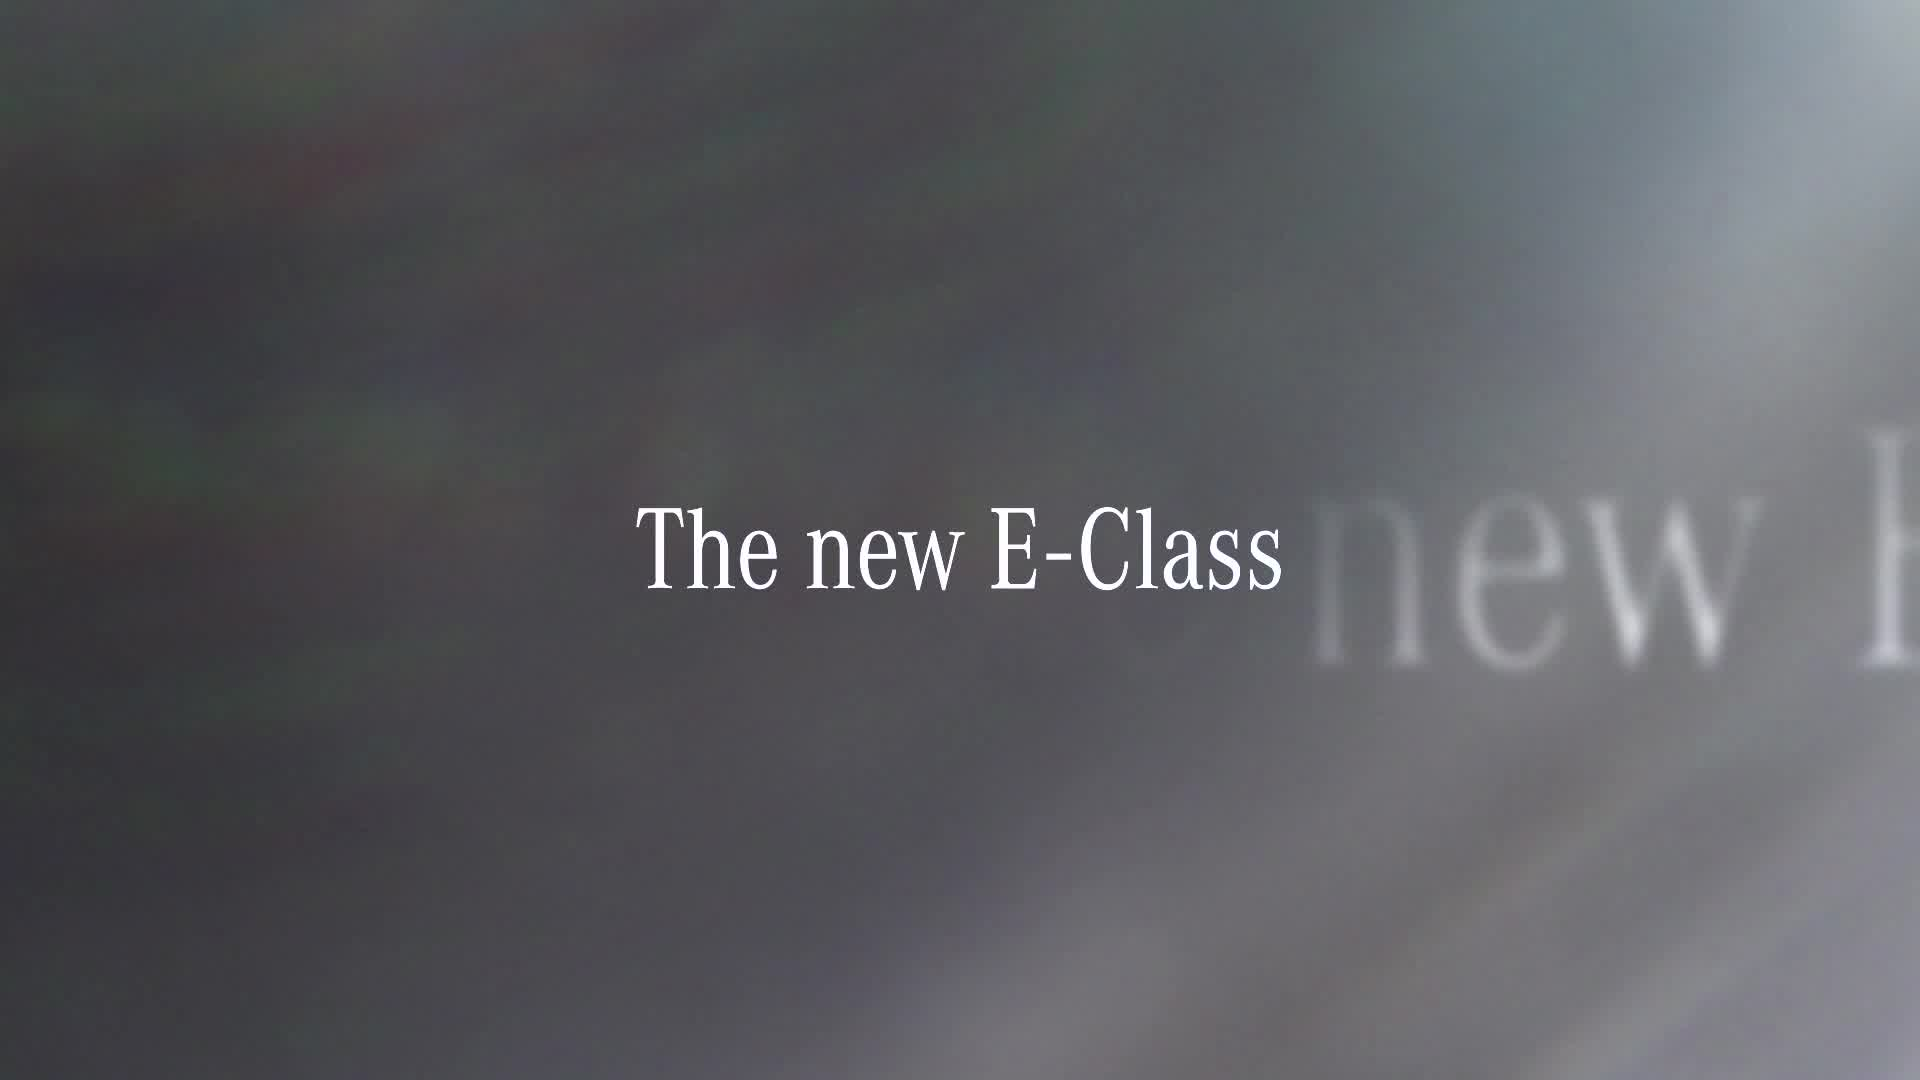 The 2017 Mercedes-Benz E-Class